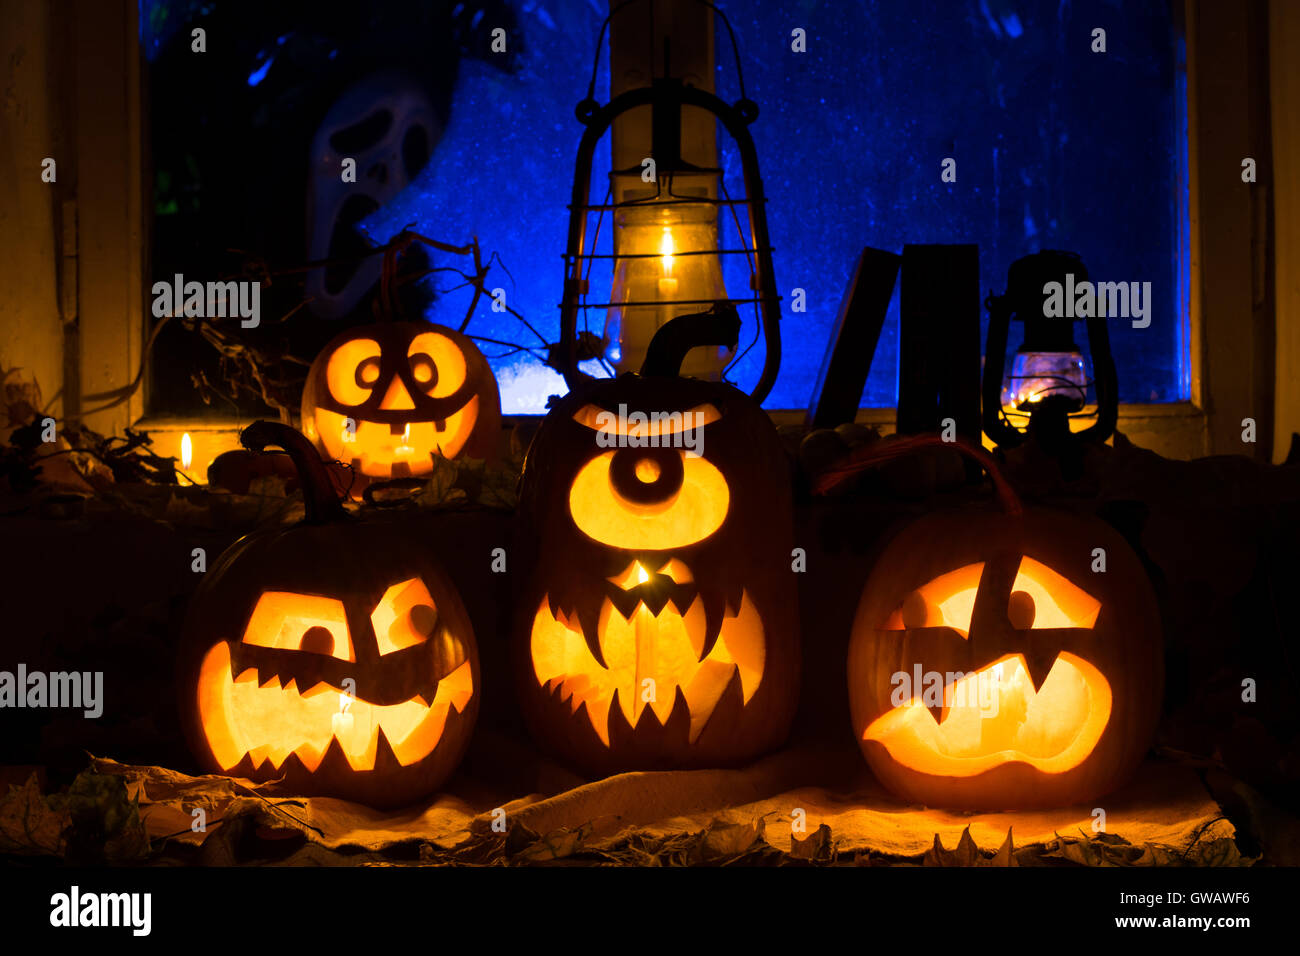 Photo composition from three pumpkins on Halloween. Embittered, the Cyclops and frightened pumpkins against an old - Stock Image